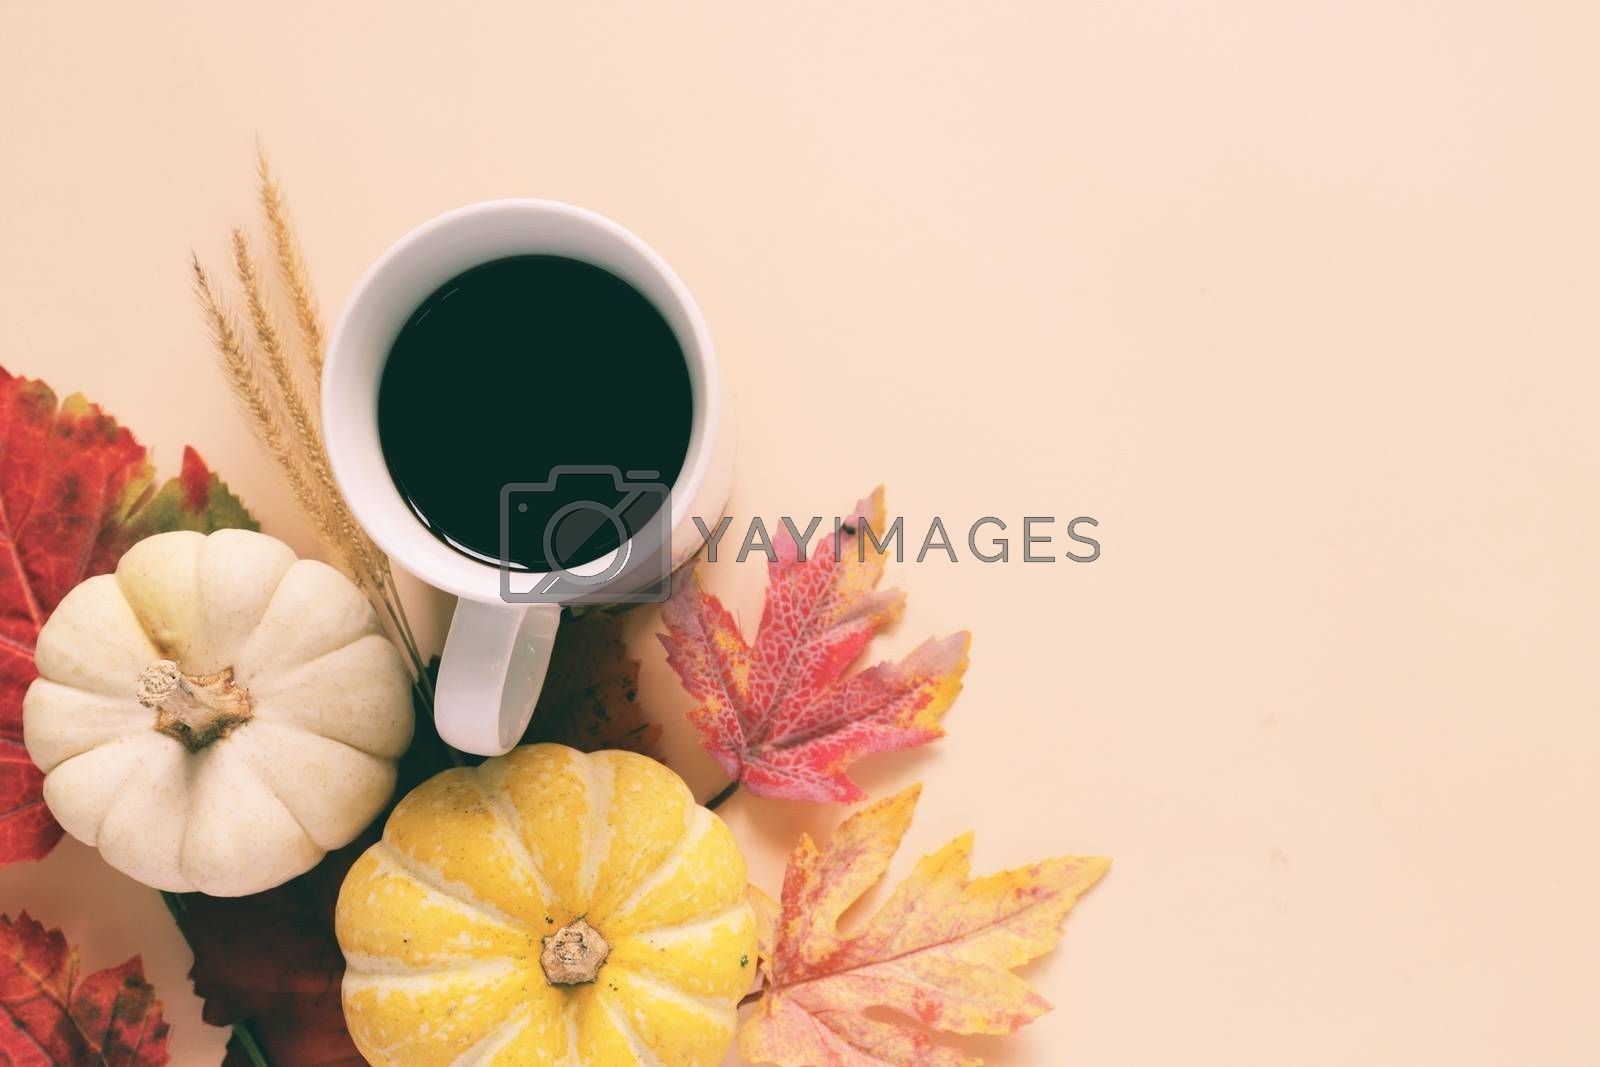 Flatl lay style of autumn and thanksgiving with pumpkin, coffee and maple leaf, copy space